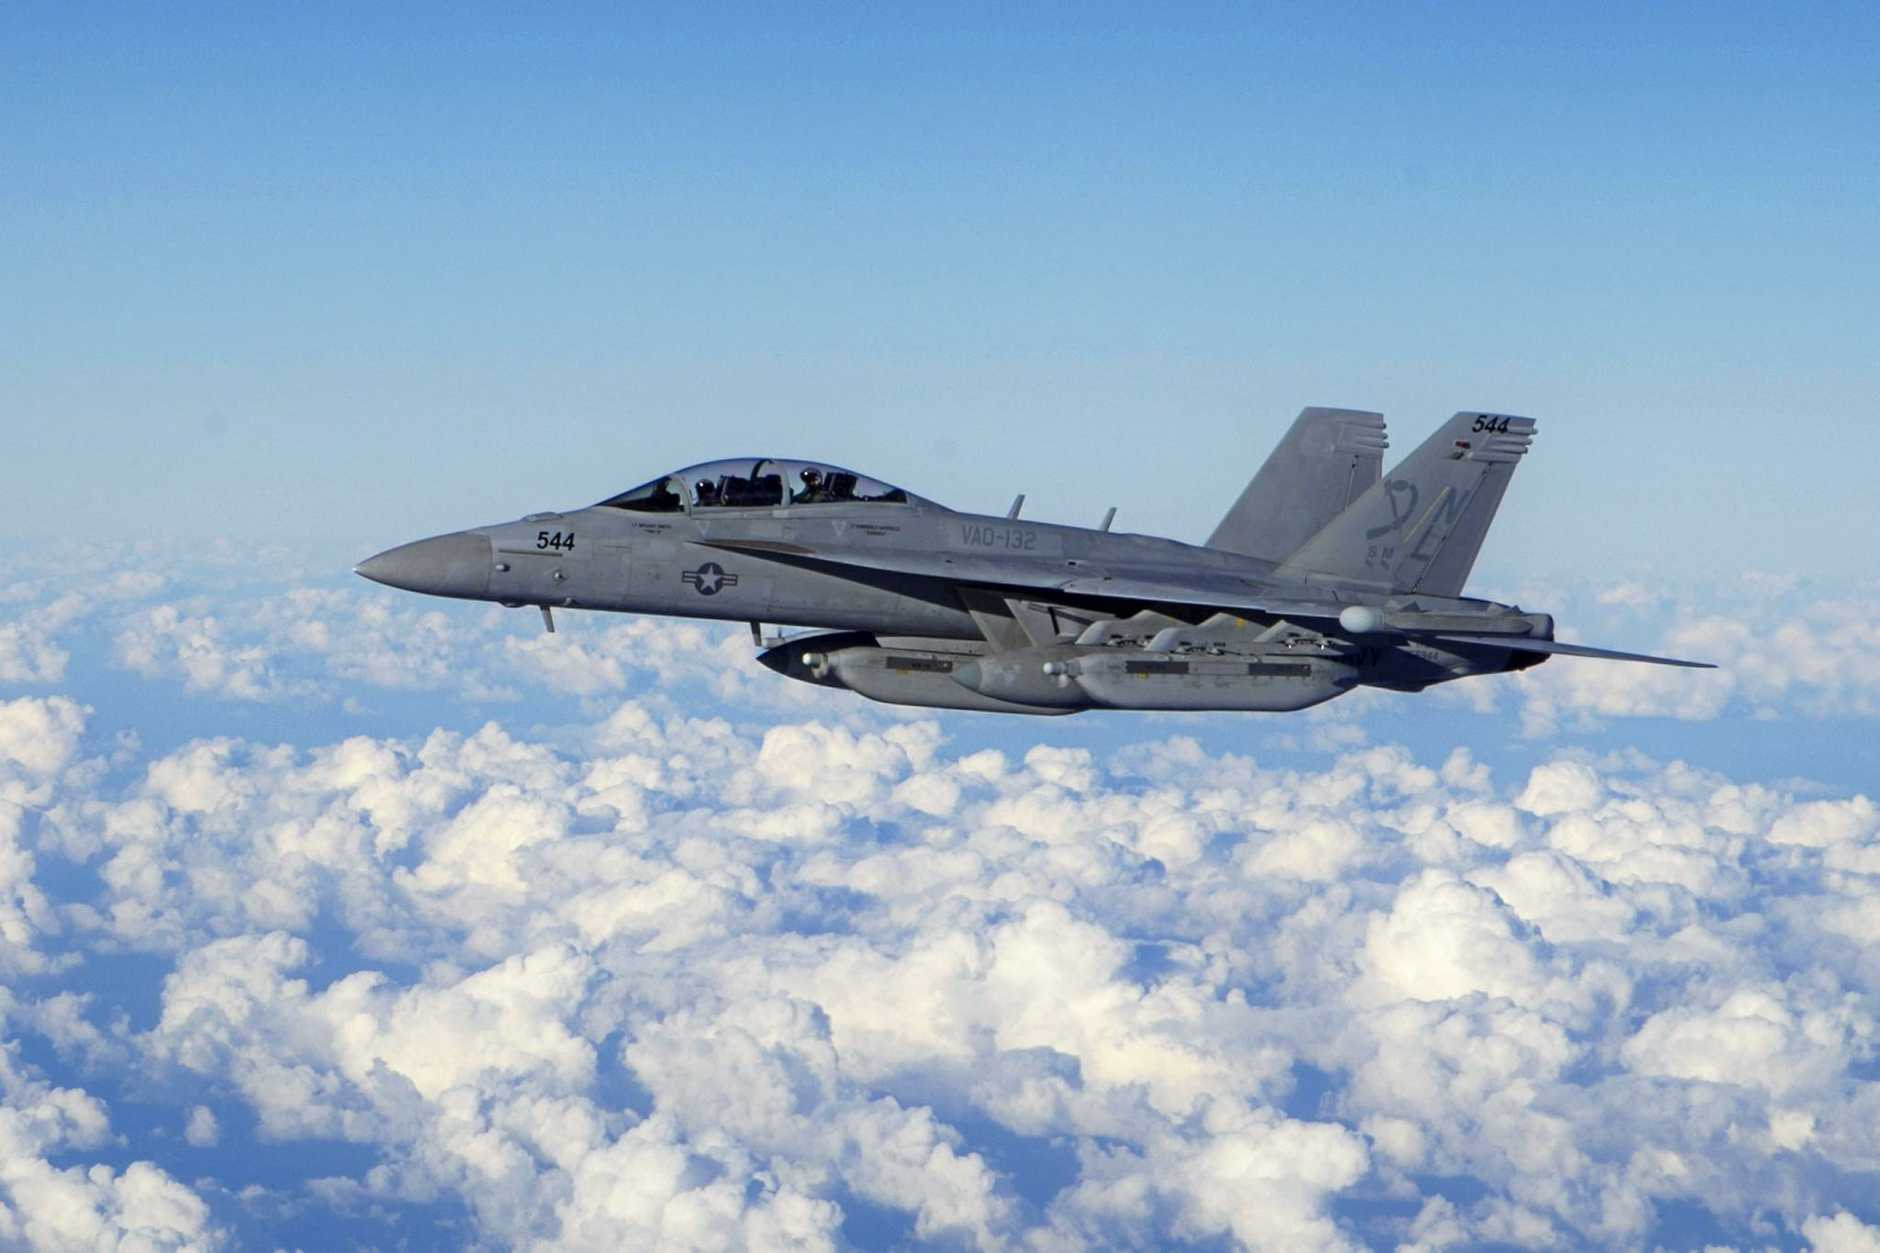 The EA-18G Growler, an airborne electronic attack aircraft, is capable of providing force level electronic warfare support.